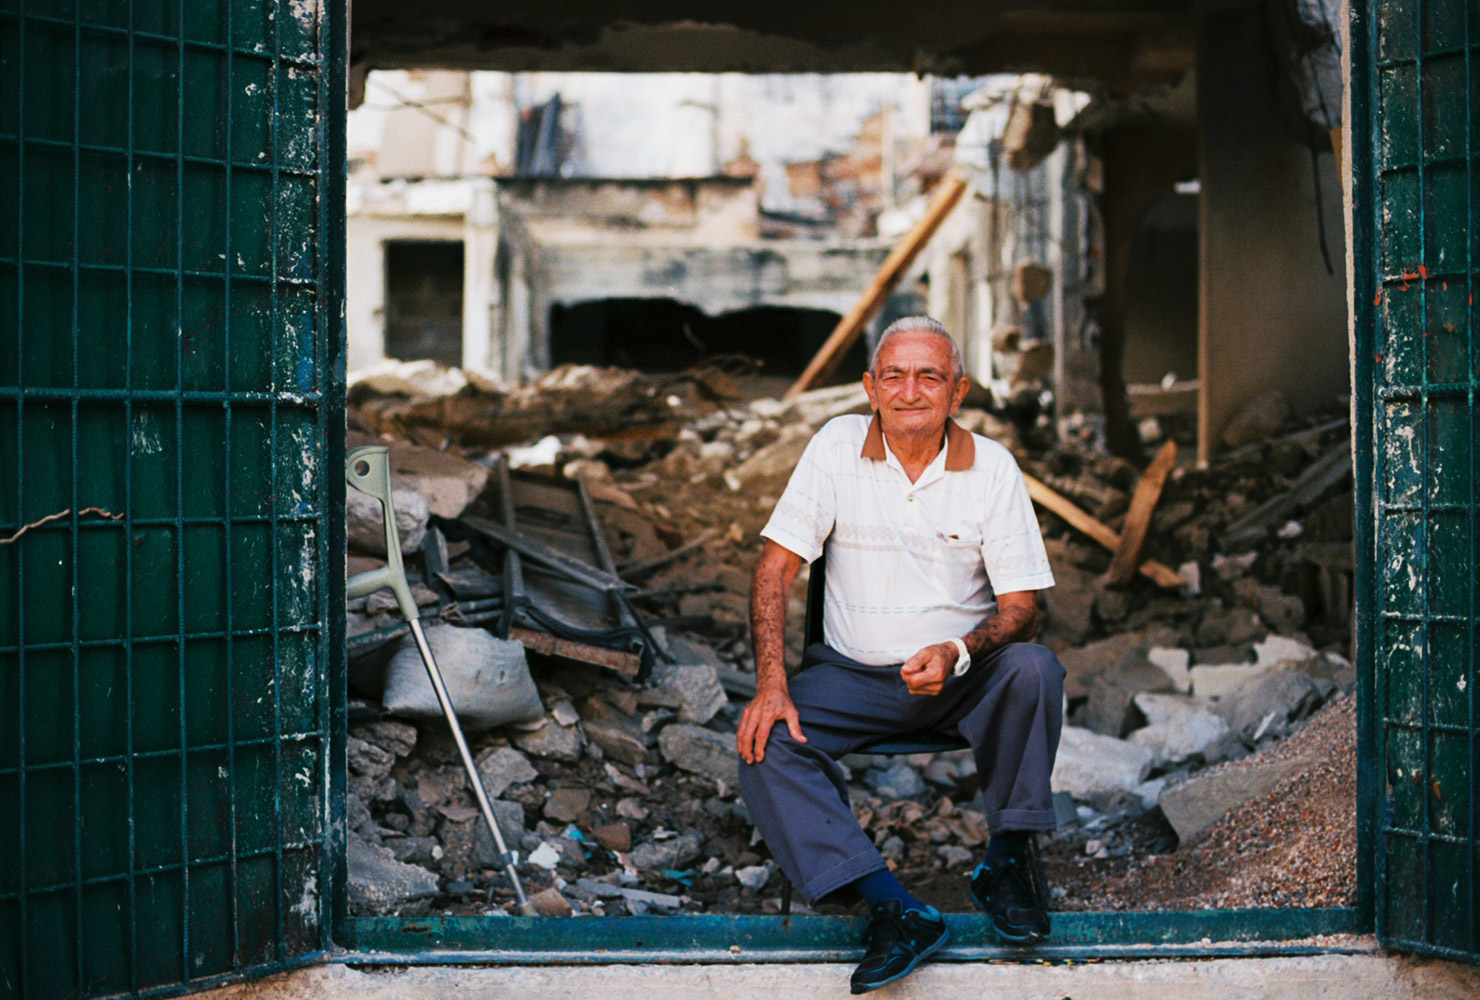 Old security guard - La Habana, Cuba, 2016